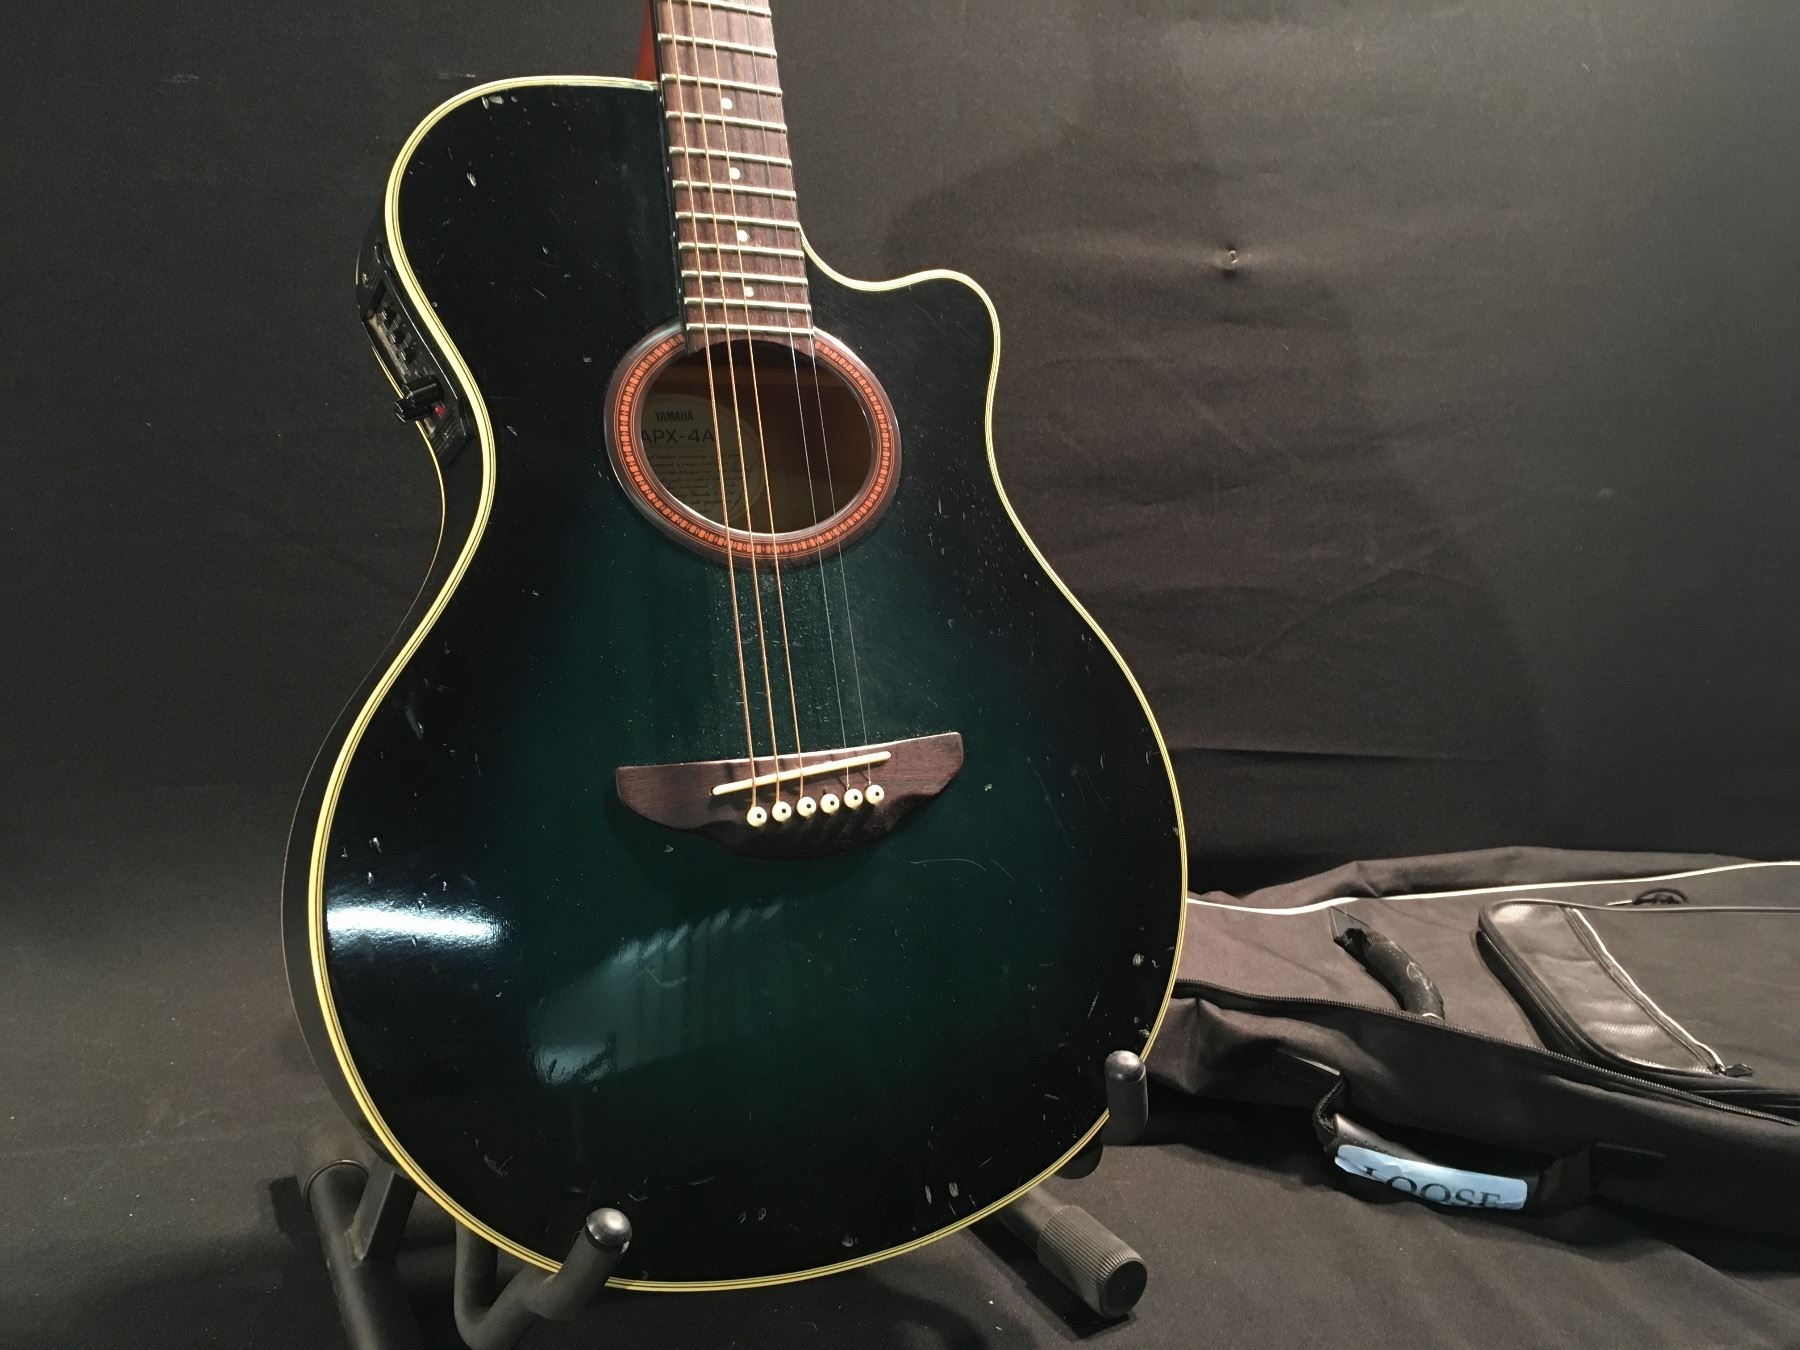 yamaha apx 4a acoustic electric guitar serial number 70321712 comes with soft shell case. Black Bedroom Furniture Sets. Home Design Ideas